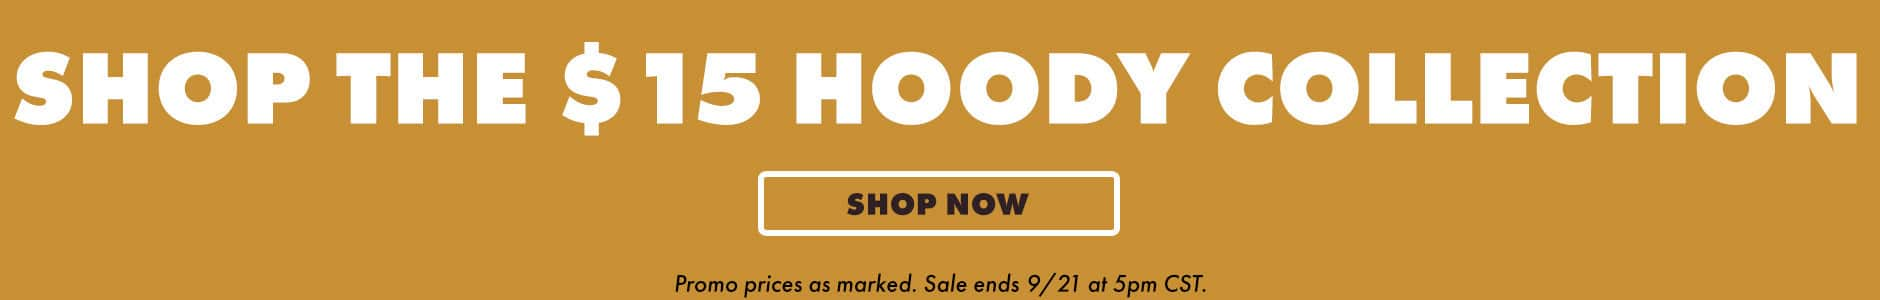 Shop the $15 hoody collection. Shop now. Promo prices as marked. Sale ends 9/21 at 5pm CST.